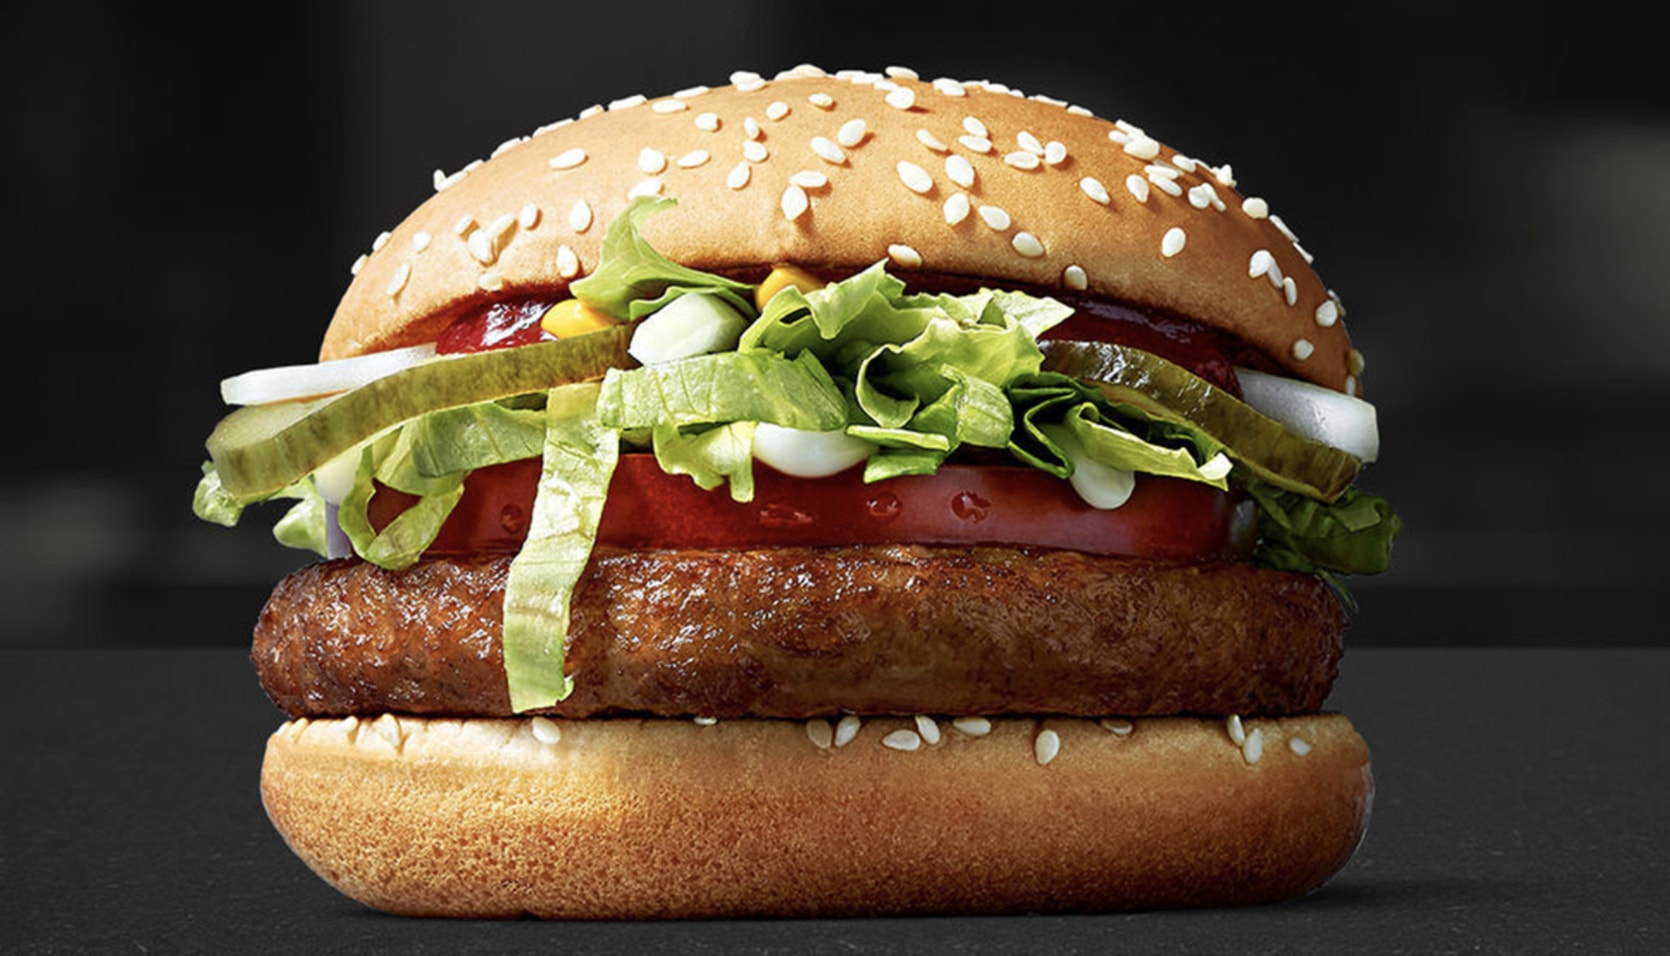 The McVegan Burger from McDonalds